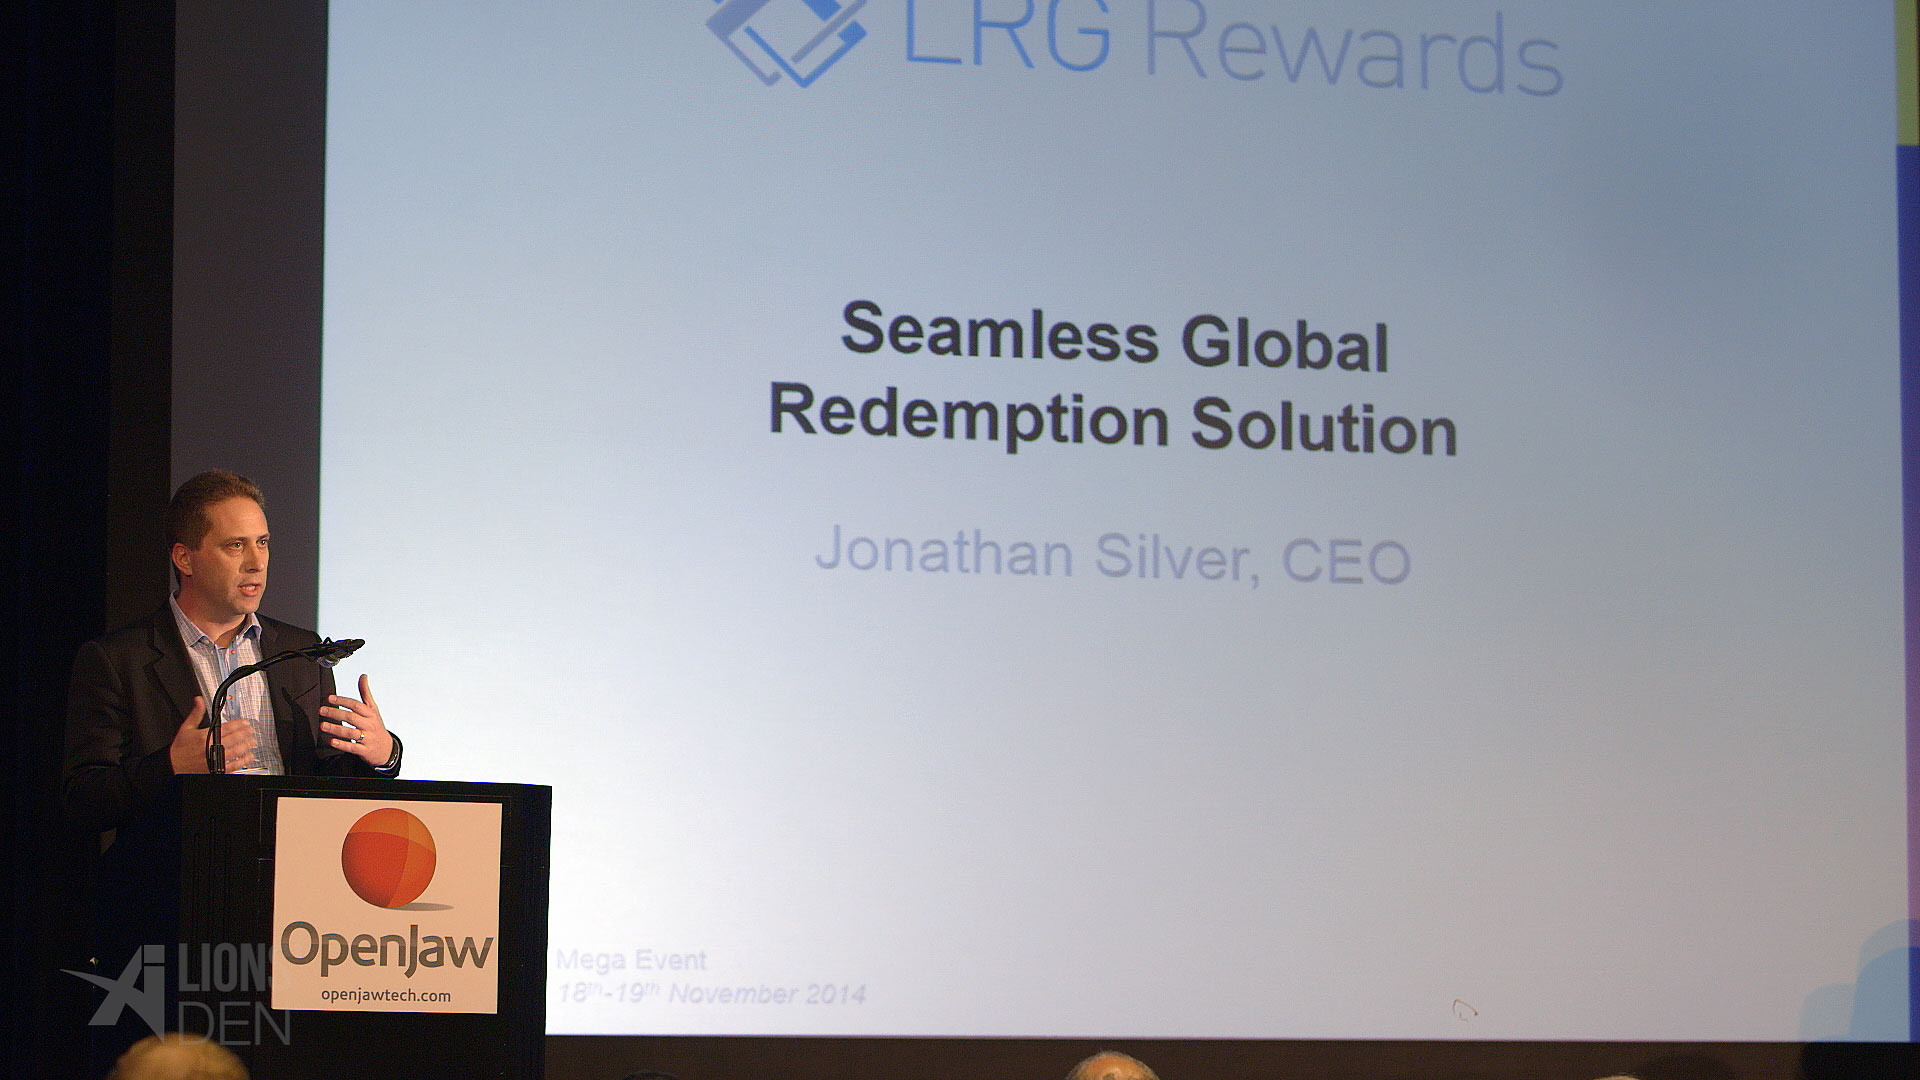 Jonathan Silver from LRG Rewards in the Lions' Den